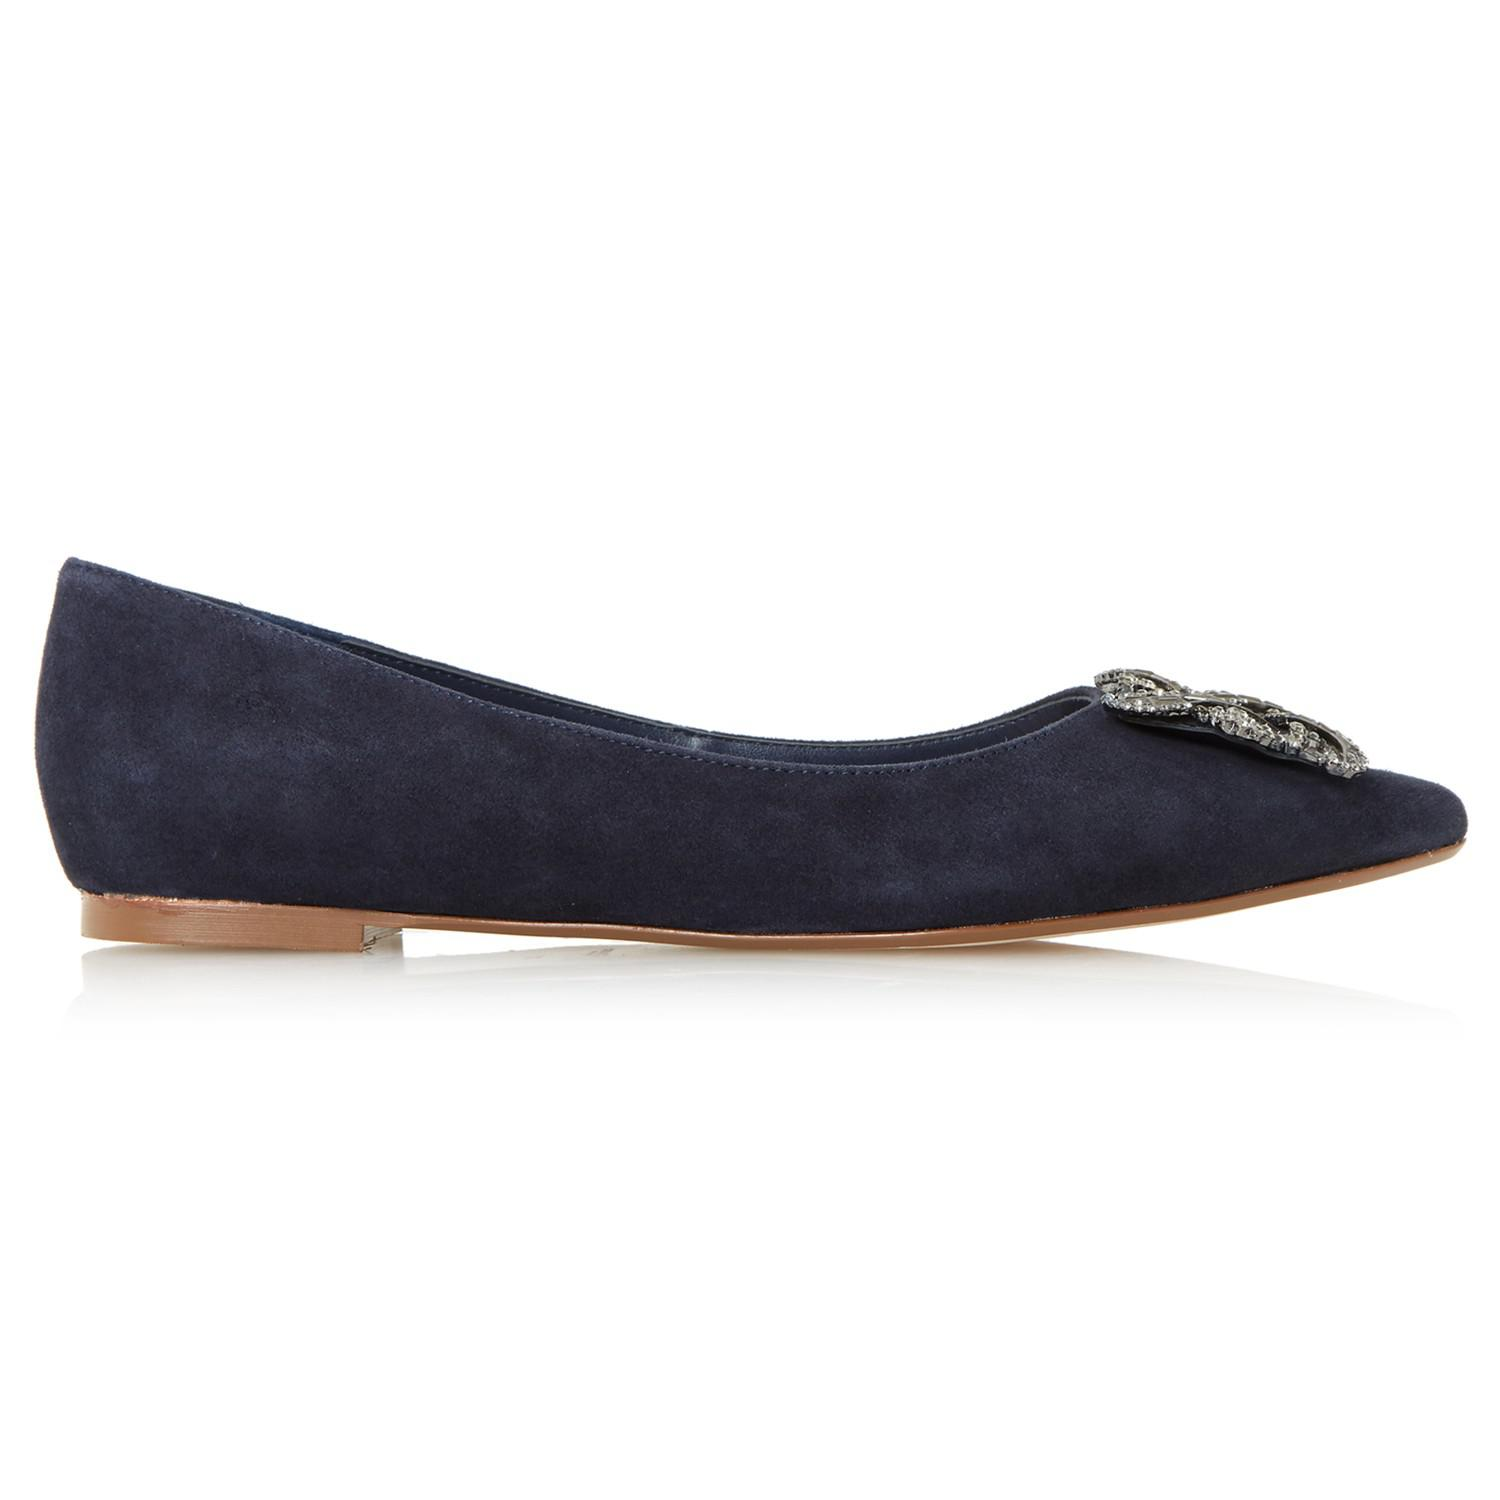 Dune Women's Briela Ballet Flats Free Shipping For Sale Pick A Best Cheap Price Cheap Pay With Paypal Cheap Footlocker Pictures Buy Cheap Many Kinds Of xmV7JQSJ